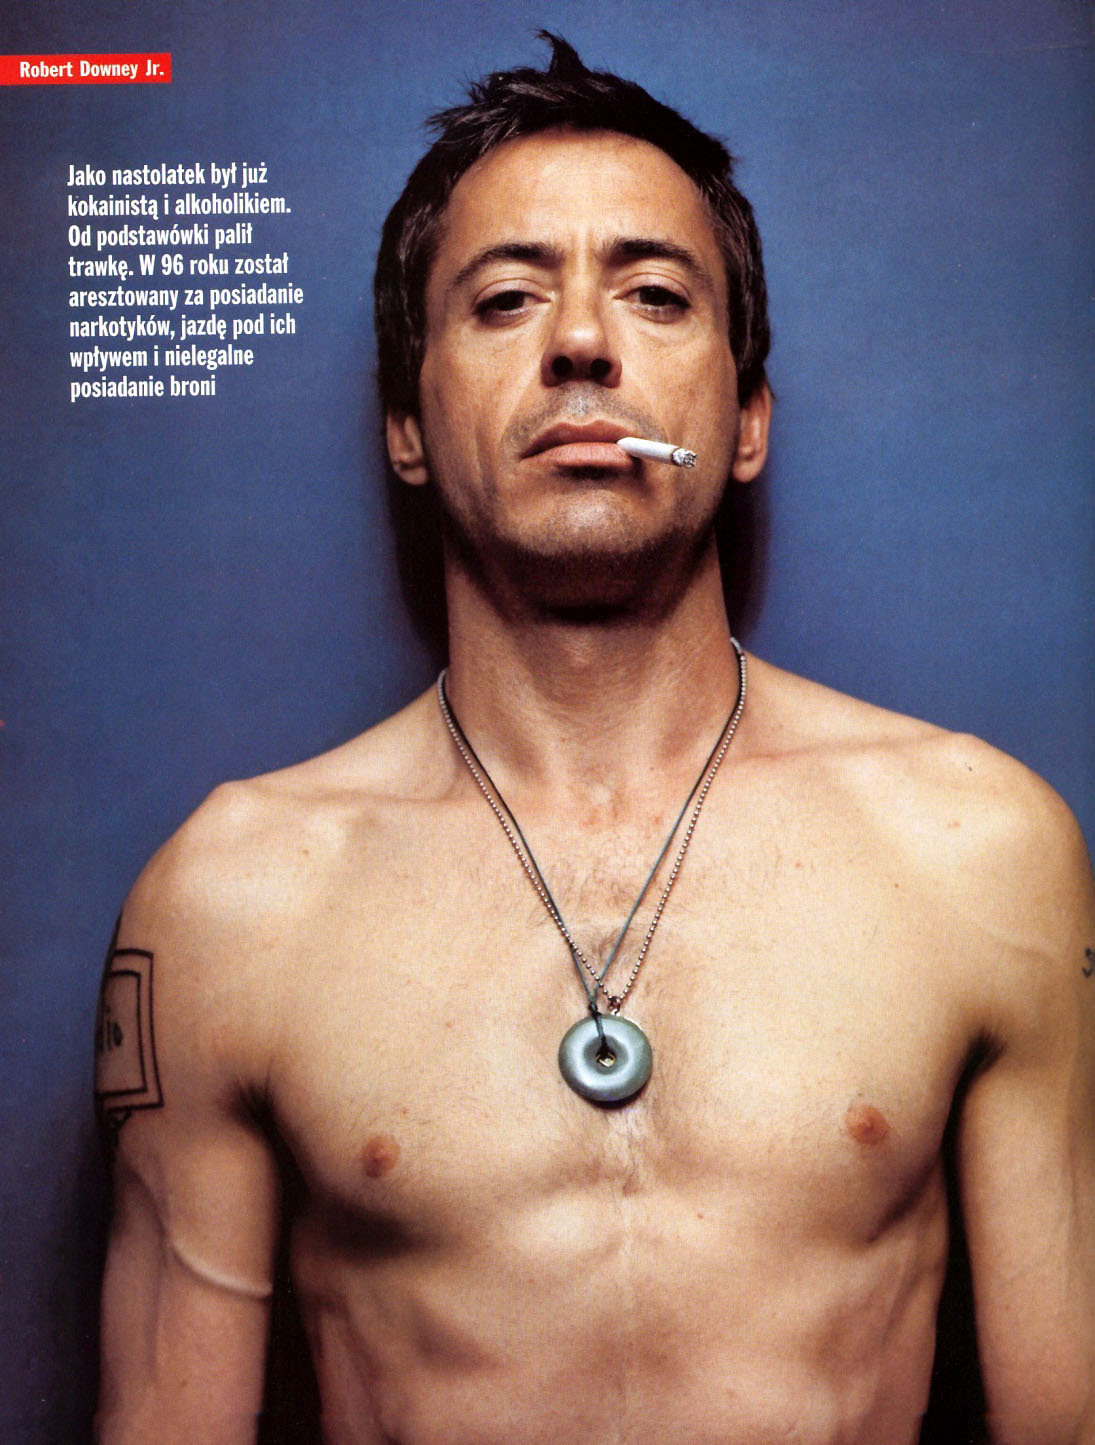 Robert Downey Jr. Robert